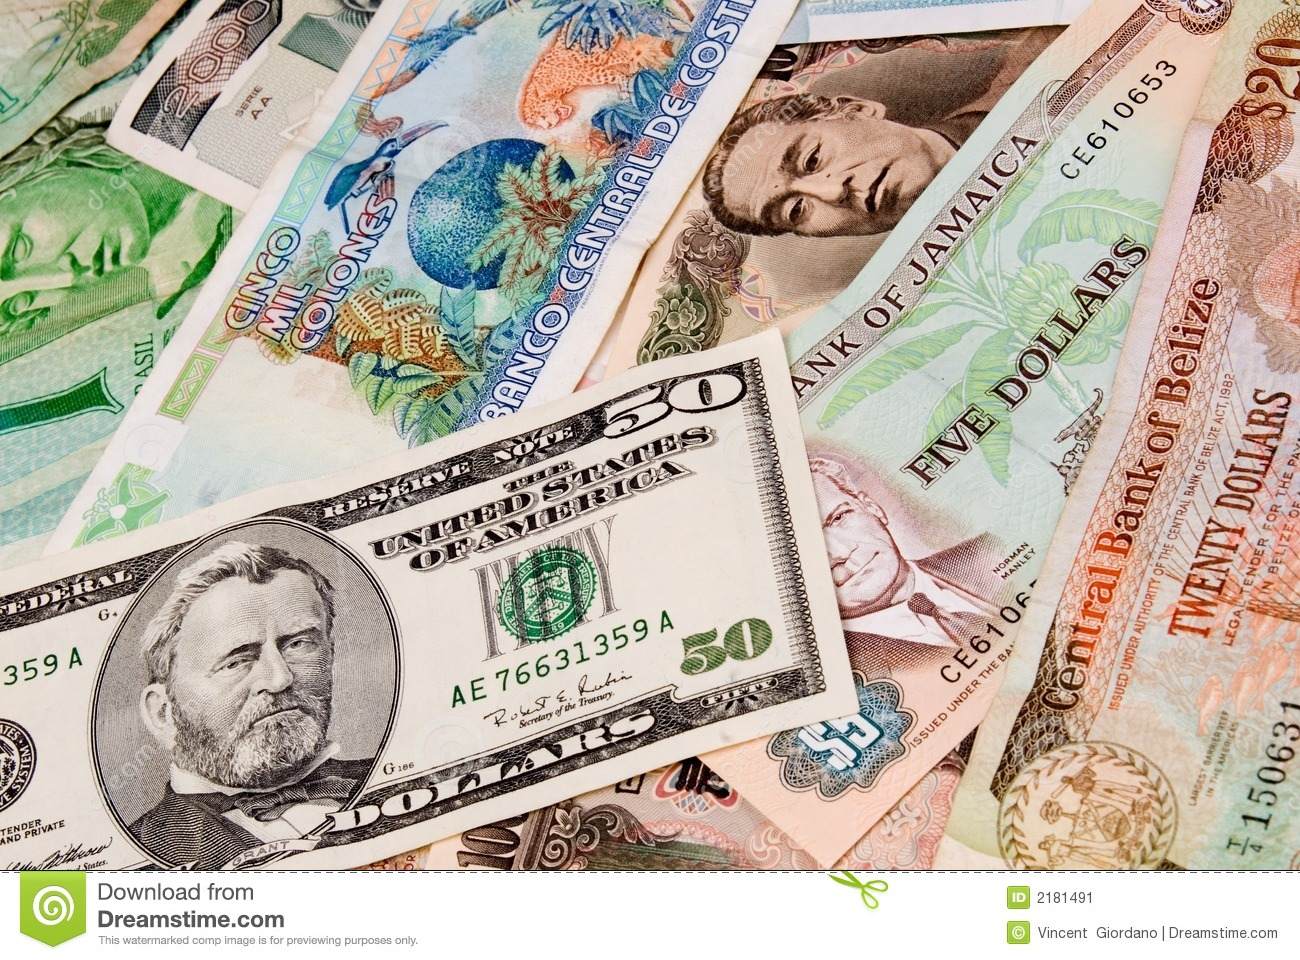 What is a foreign currency